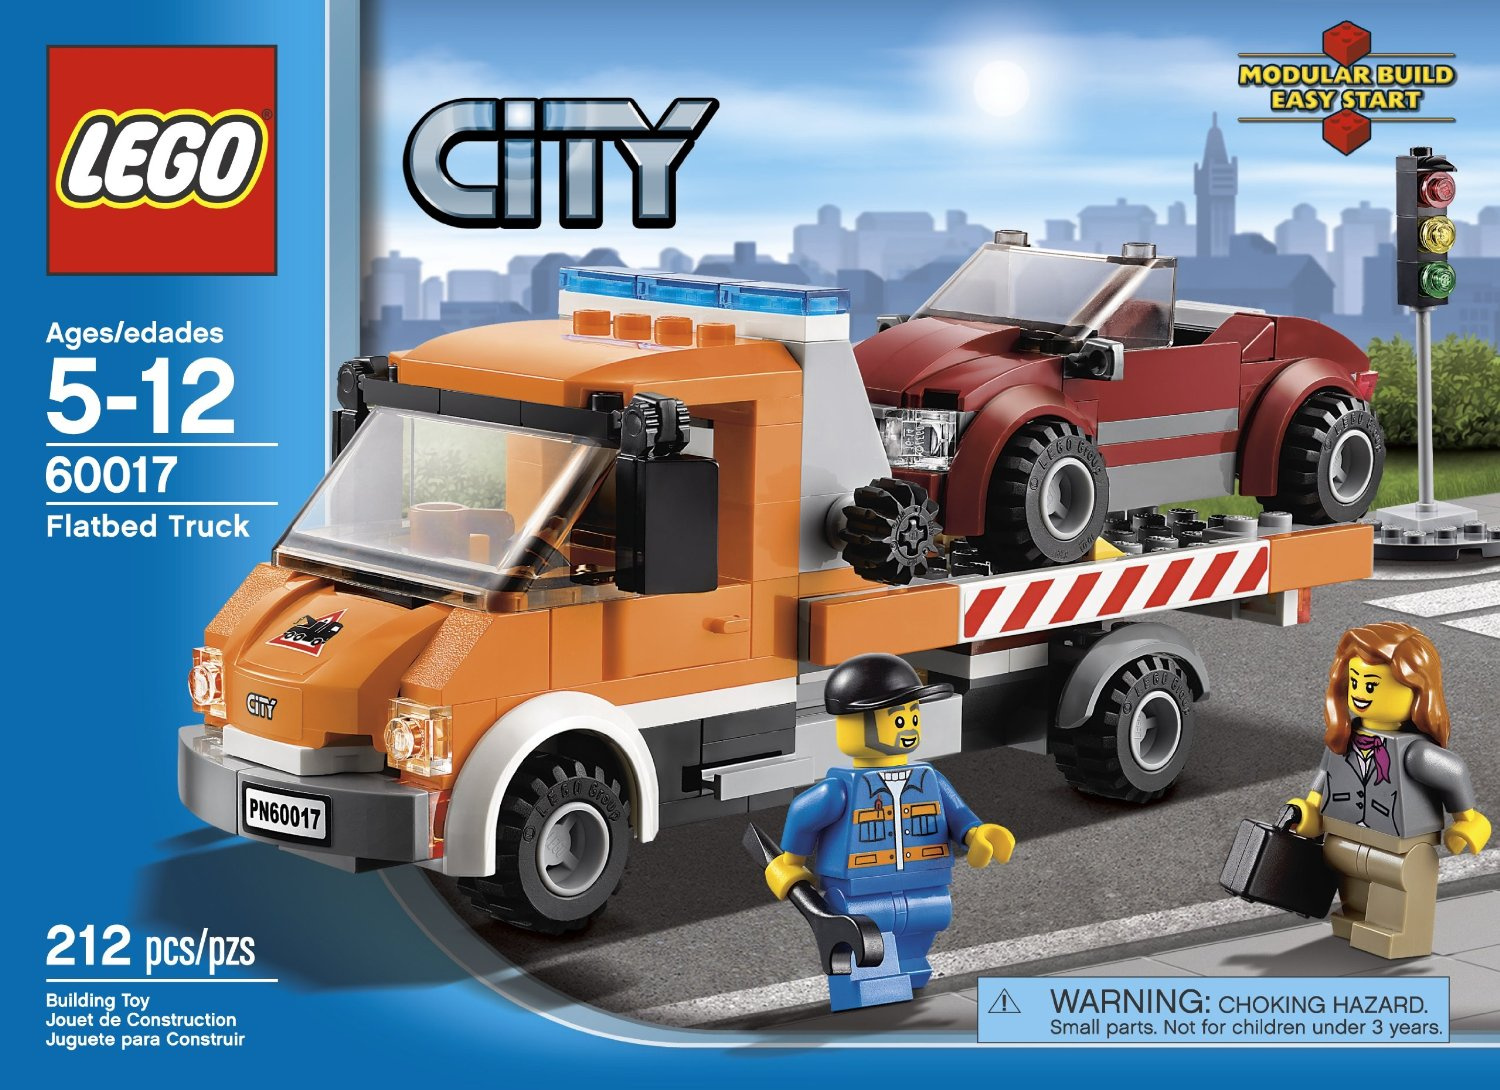 Magrudy Construction Toys